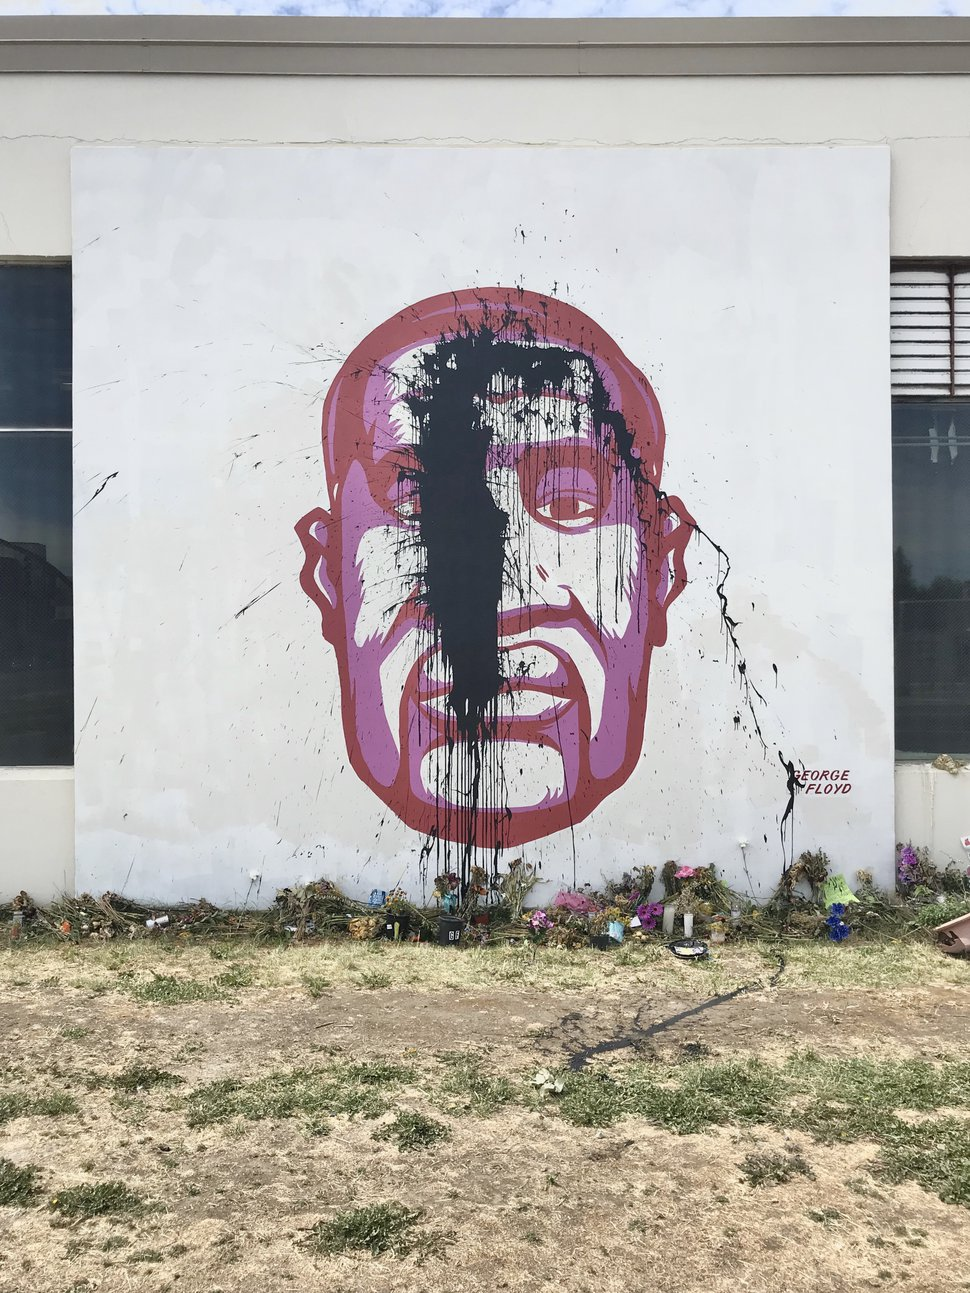 (Courtesy photo) A tar-like substance was used to deface a mural on a building near 300 West and 800 South in Salt Lake City that depicts George Floyd. Artists later returned to fix the vandalism on Sunday, June 21, 2020.